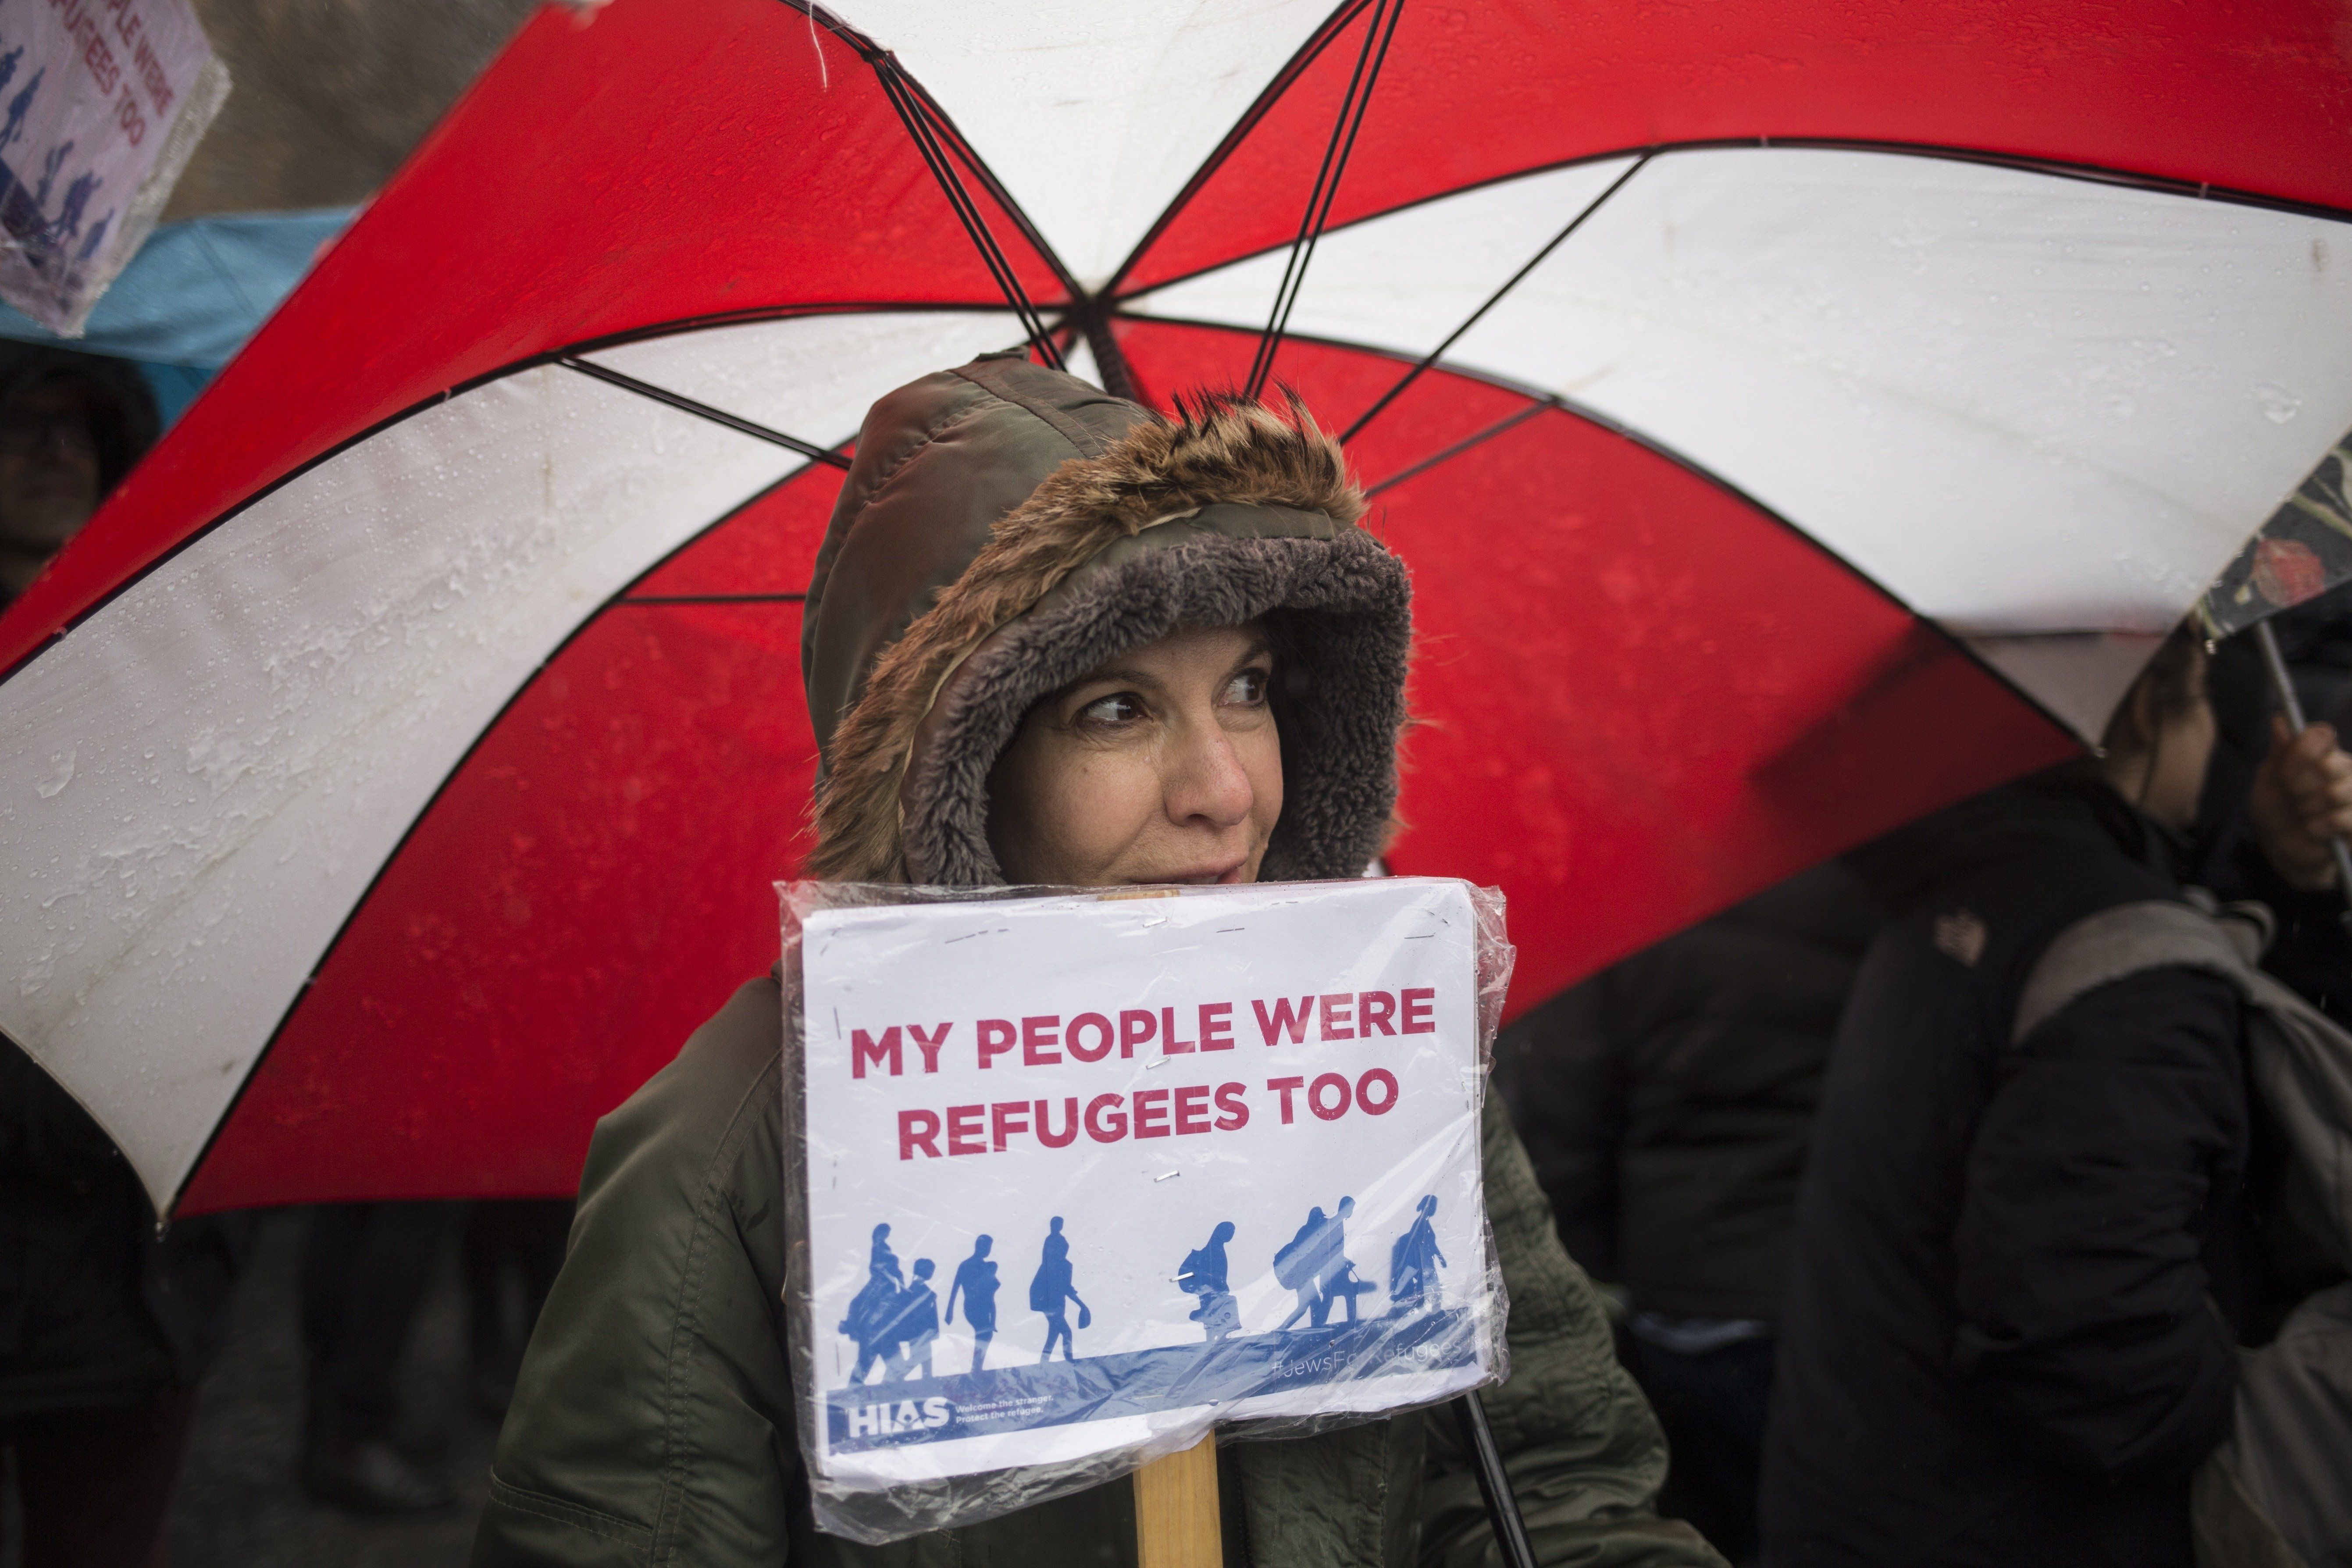 NEW YORK, NY - FEBRUARY 12: HIAS, the global Jewish nonprofit that protects refugees, holds a rally against President Trump's immigration ban at Battery Park on February 12, 2017 in New York City. New York City Mayor Bill de Blasio also spoke amongst hundreds of people who came to show support. (Photo by Alex Wroblewski/Getty Images)